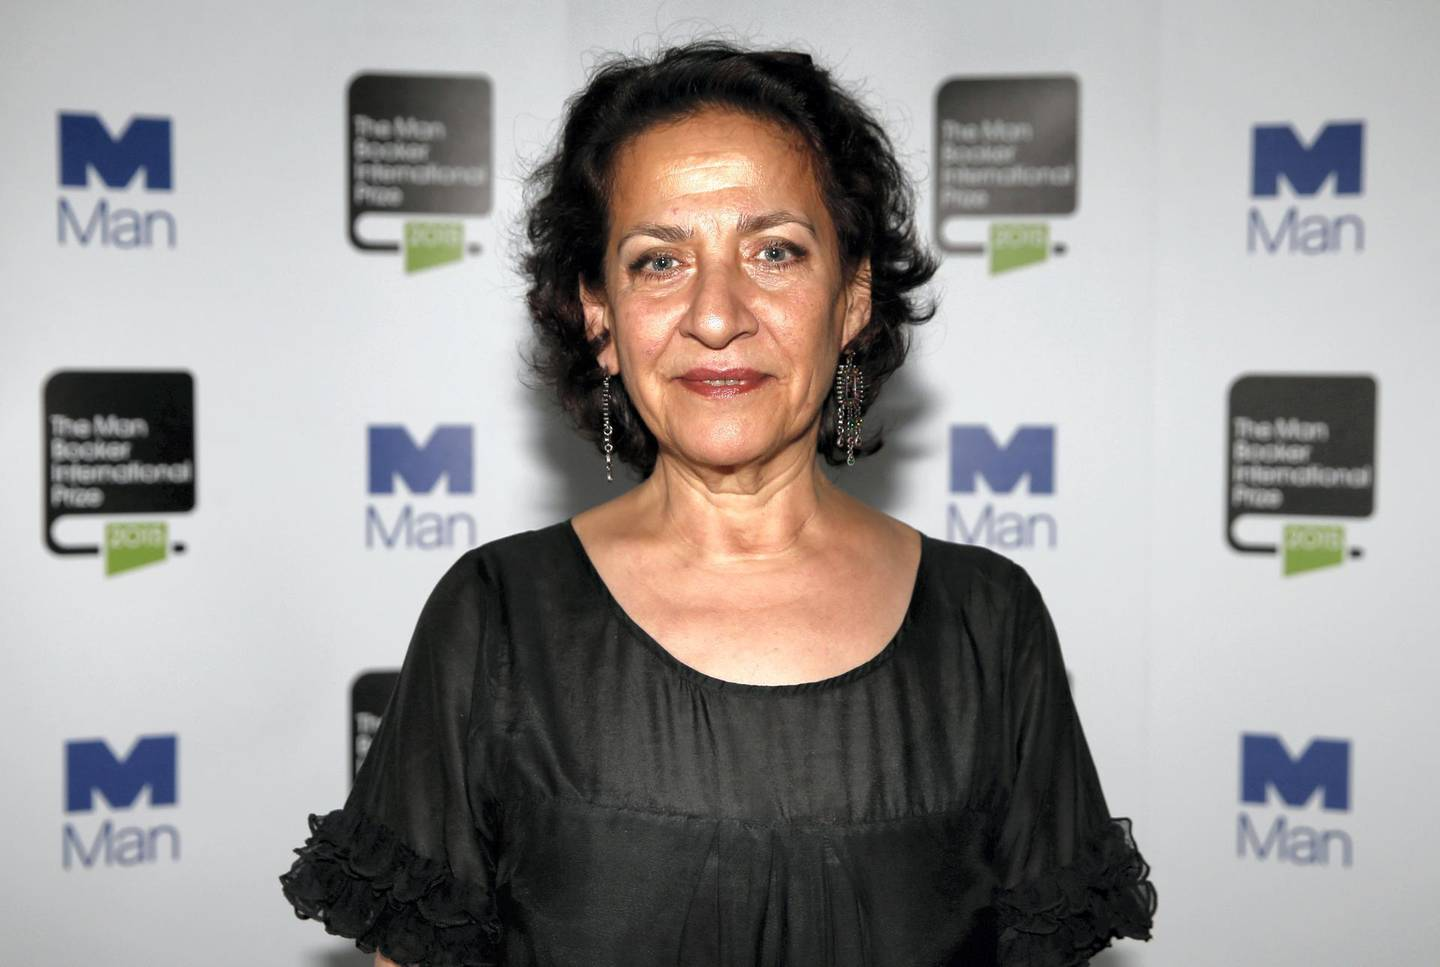 Lebanese writer Hoda Barakat, one of the ten finalists for the 2015 Man Booker International Prize poses for a photograph at the Victoria and Albert Museum in London on May 19, 2015, ahead of tonight's award announcement. The £60,000 prize, awarded every two years, highlight's one writer's contribution to fiction on the world stage.   AFP PHOTO / ADRIAN DENNIS (Photo by ADRIAN DENNIS / AFP)